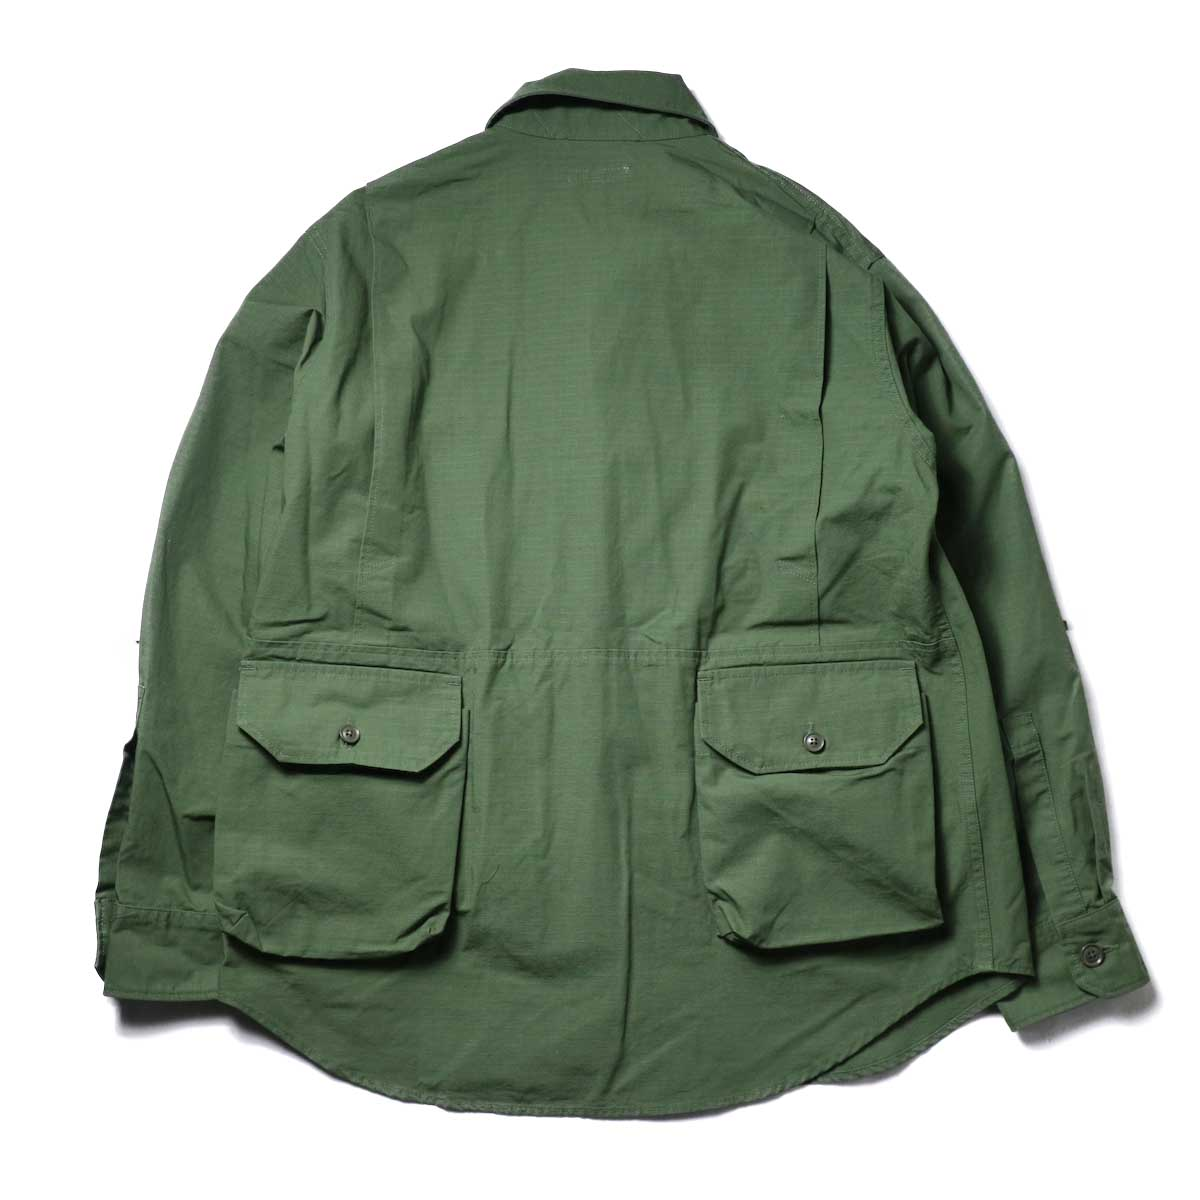 Engineered Garments / Explorer Shirt Jacket -Cotton Ripstop (Olive)背面